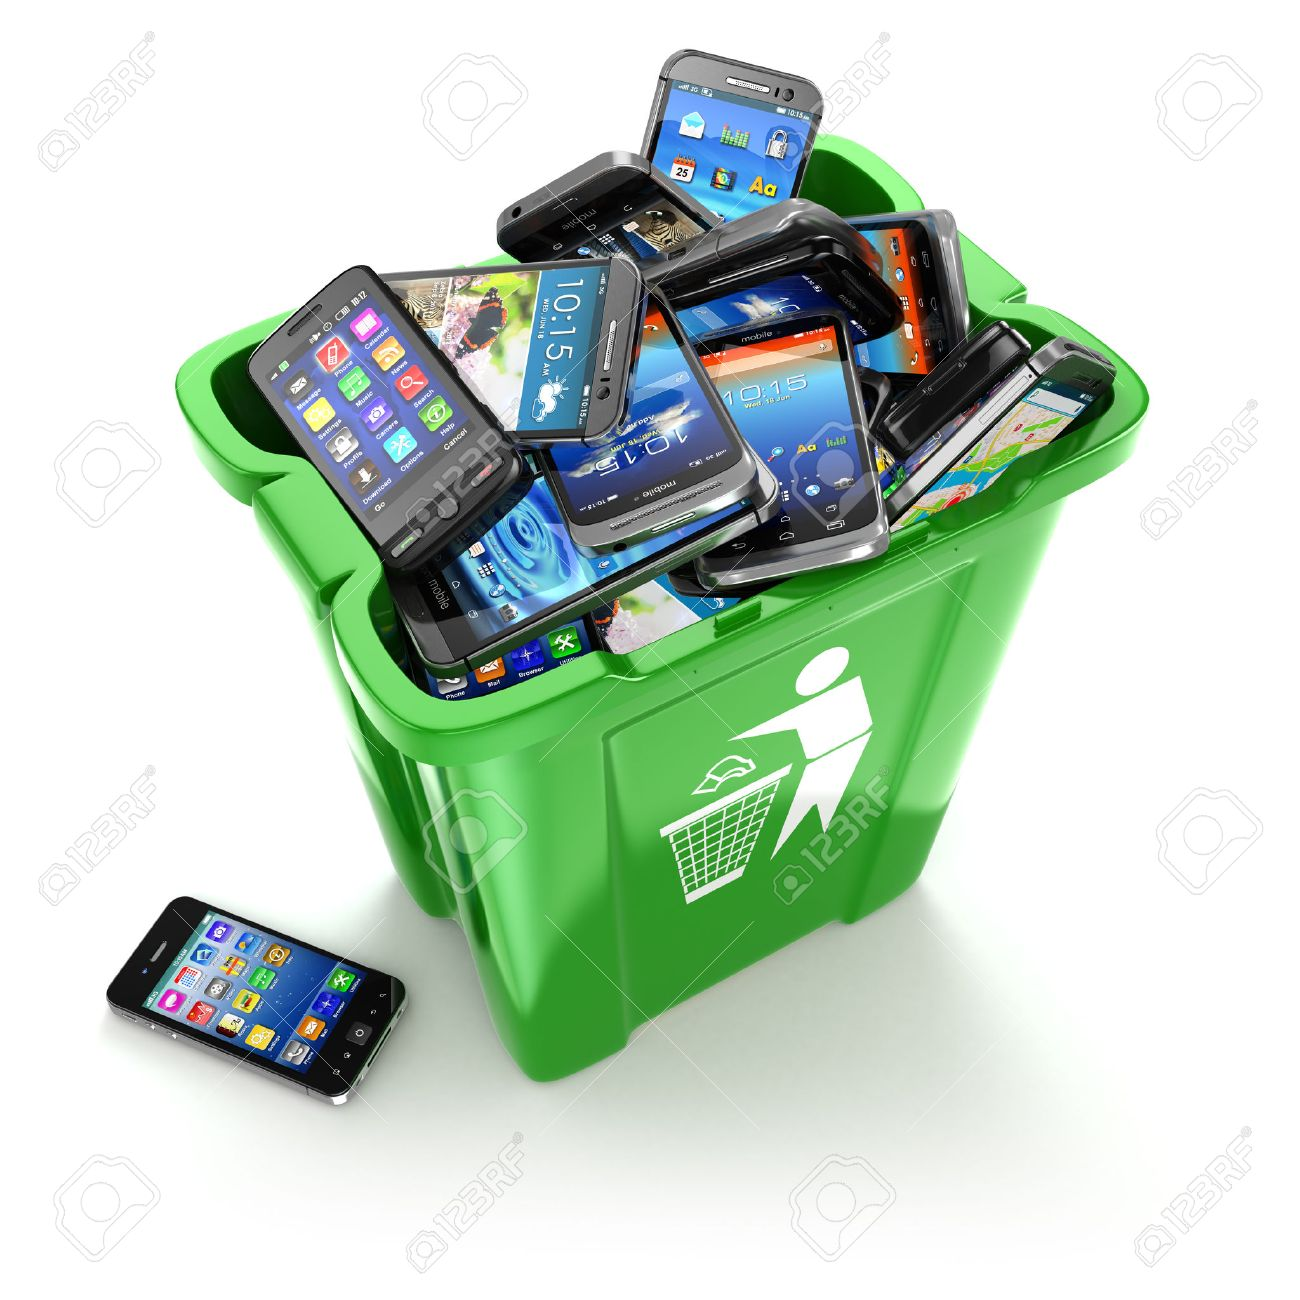 E waste background images - Electronic Waste Mobile Phones In Trash Can Isolated On White Background Utilization Cellphones Concept